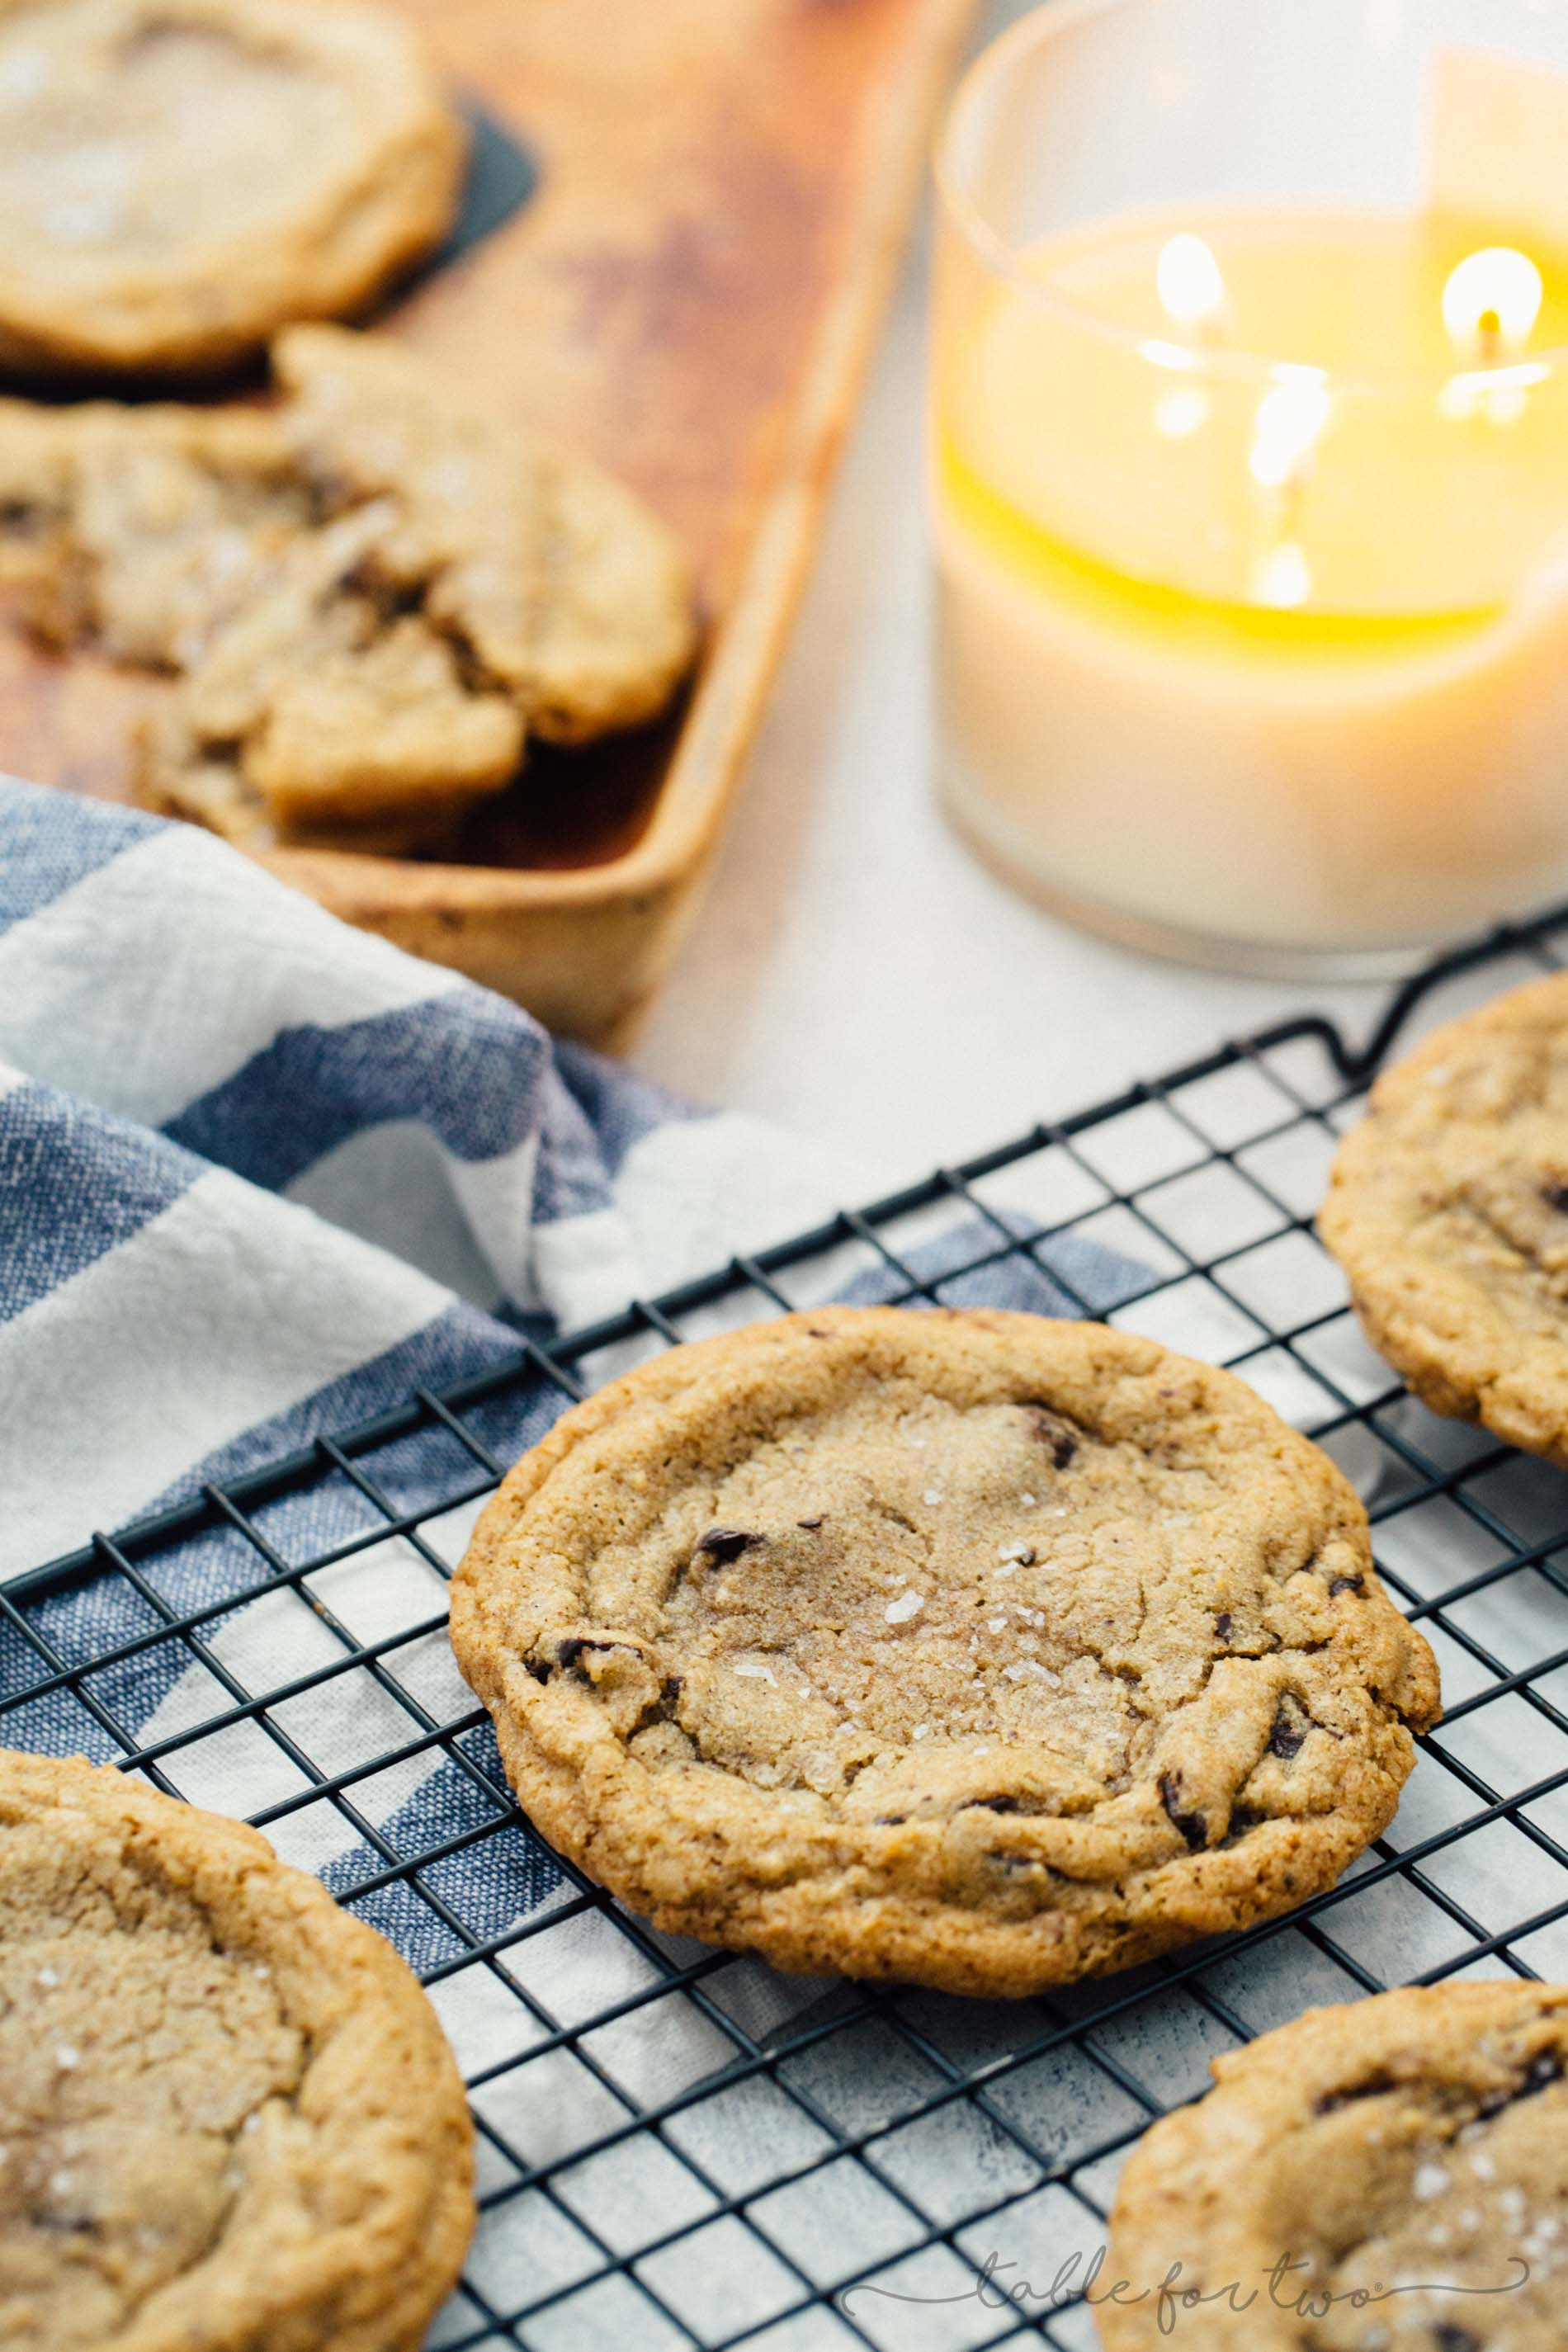 The perfect cookie has crispy edges with a soft and chewy center! These chewy chai chocolate chunk cookies do not disappoint and you'll love having a batch of these in the oven because it makes your house smell so delicious! The warming chai spice is the perfect addition to these cookies!